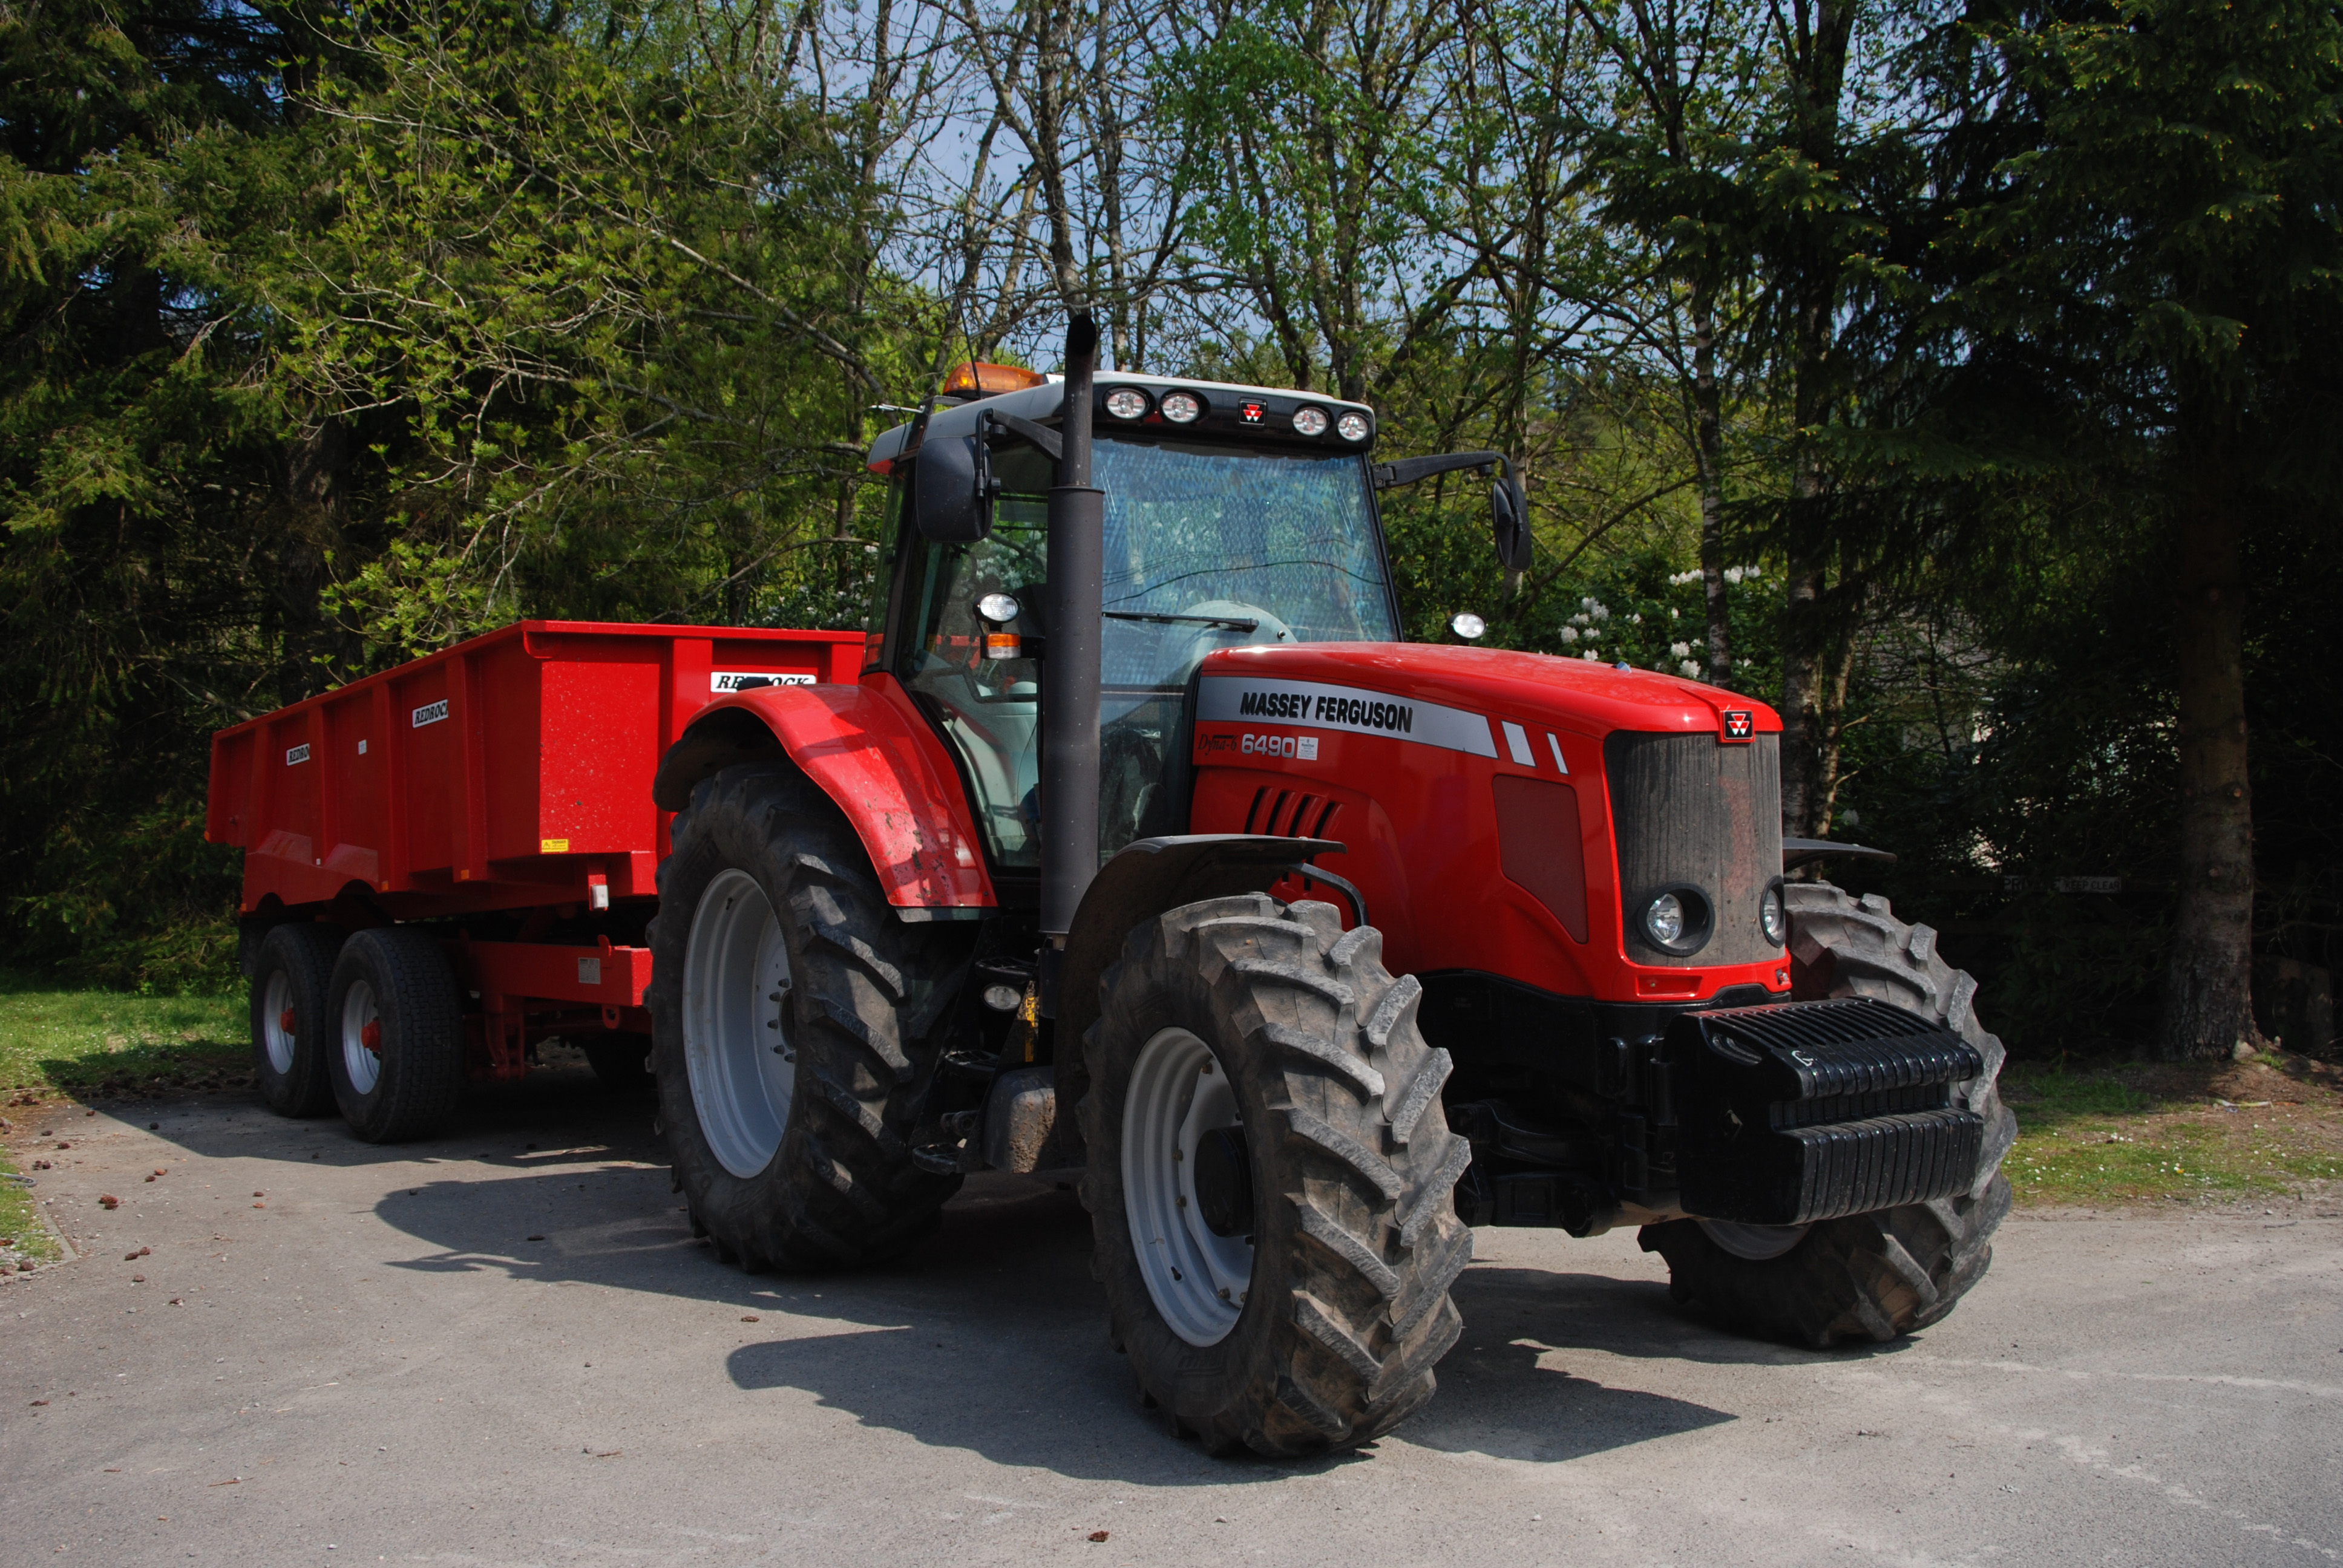 Massey ferguson 400 photo - 2